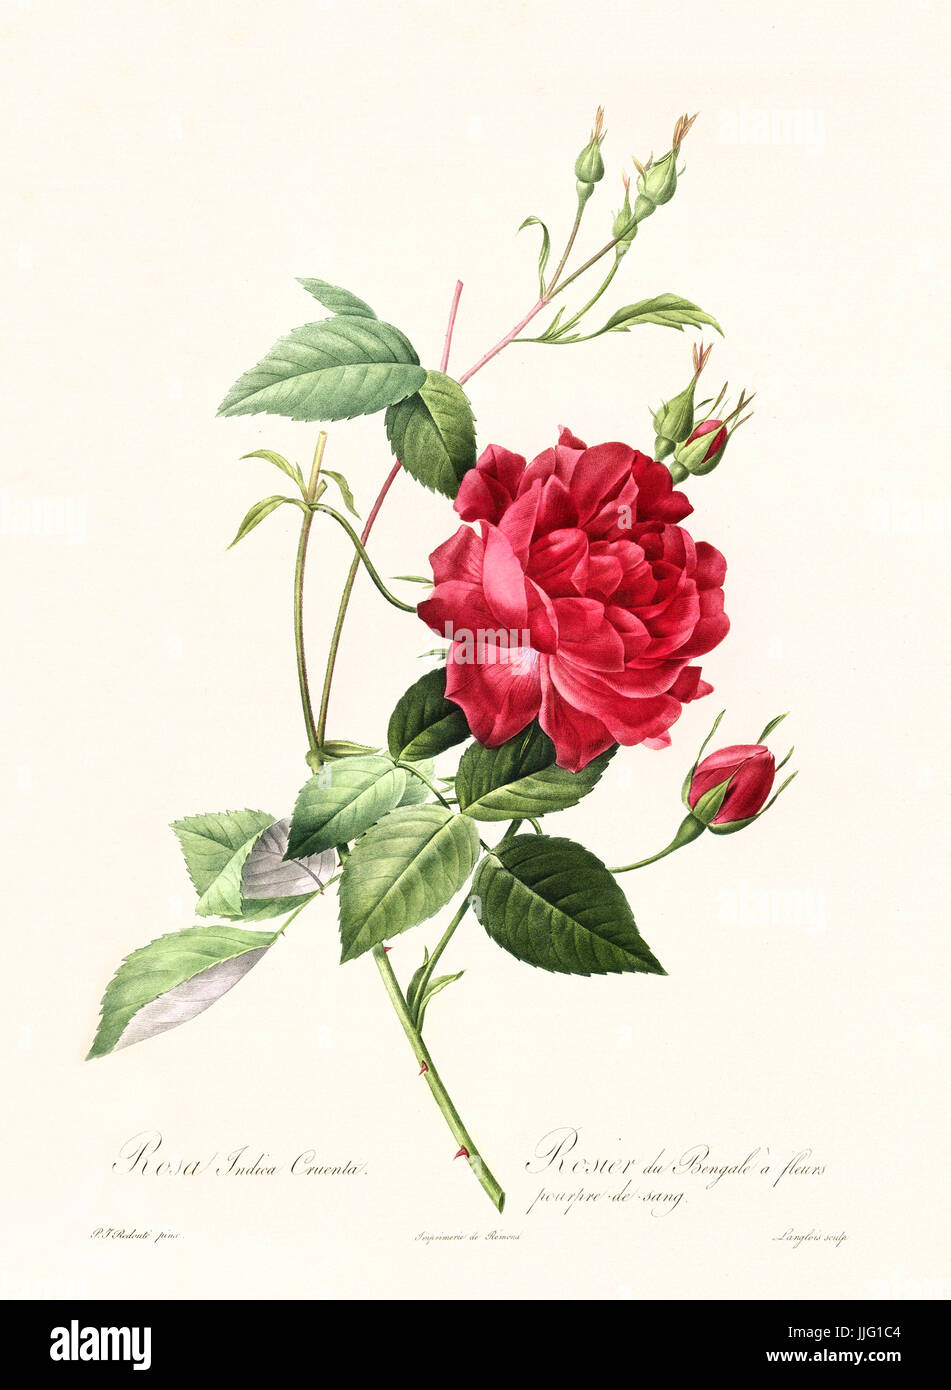 Old illustration of Rosa indica cuenta. Created by P. R. Redoute, published on Les Roses, Imp. Firmin Didot, Paris, - Stock Image